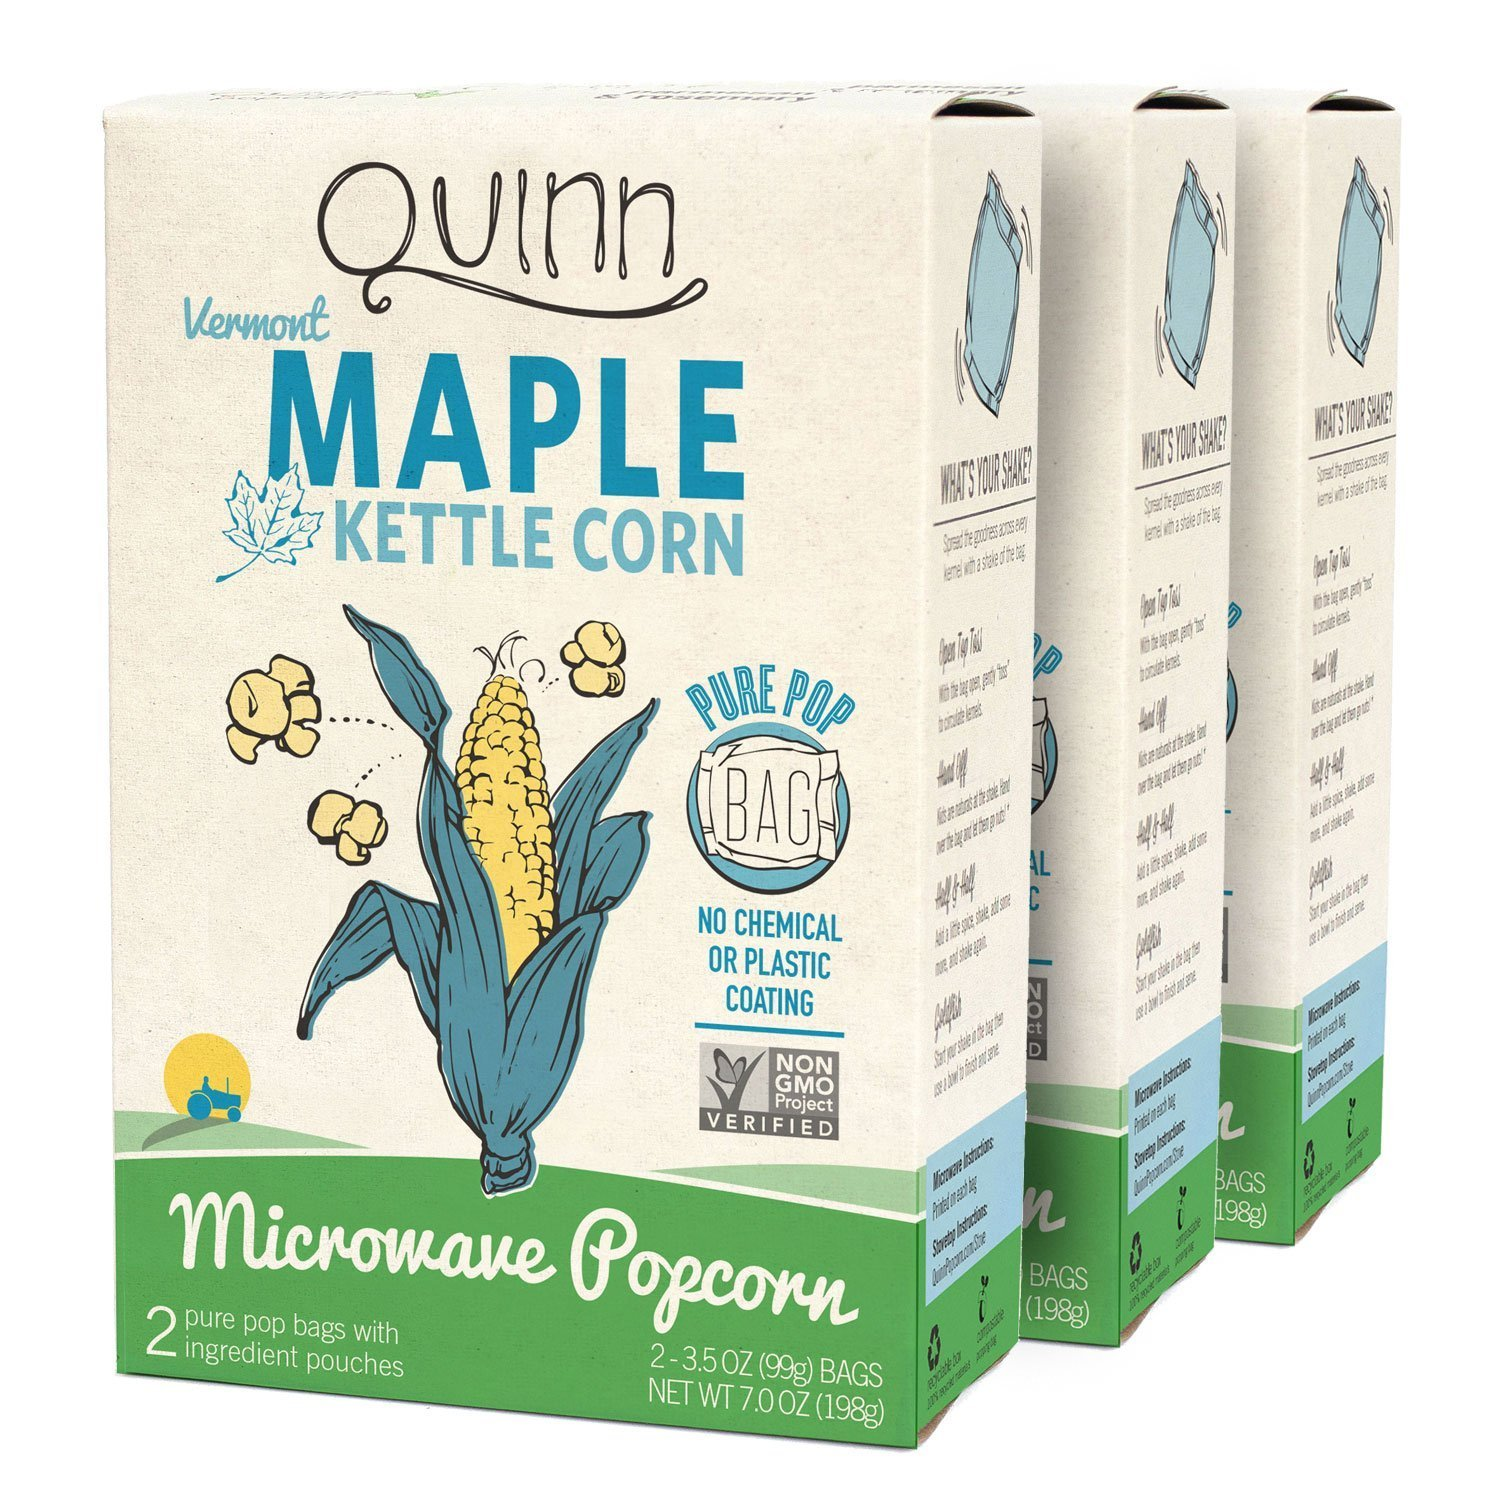 Quinn Snacks Microwave Popcorn - Made with Organic Non-GMO Corn - Great Snack Food for Movie Night, Maple Kettle Corn, 7 Ounce (Pack of 3)